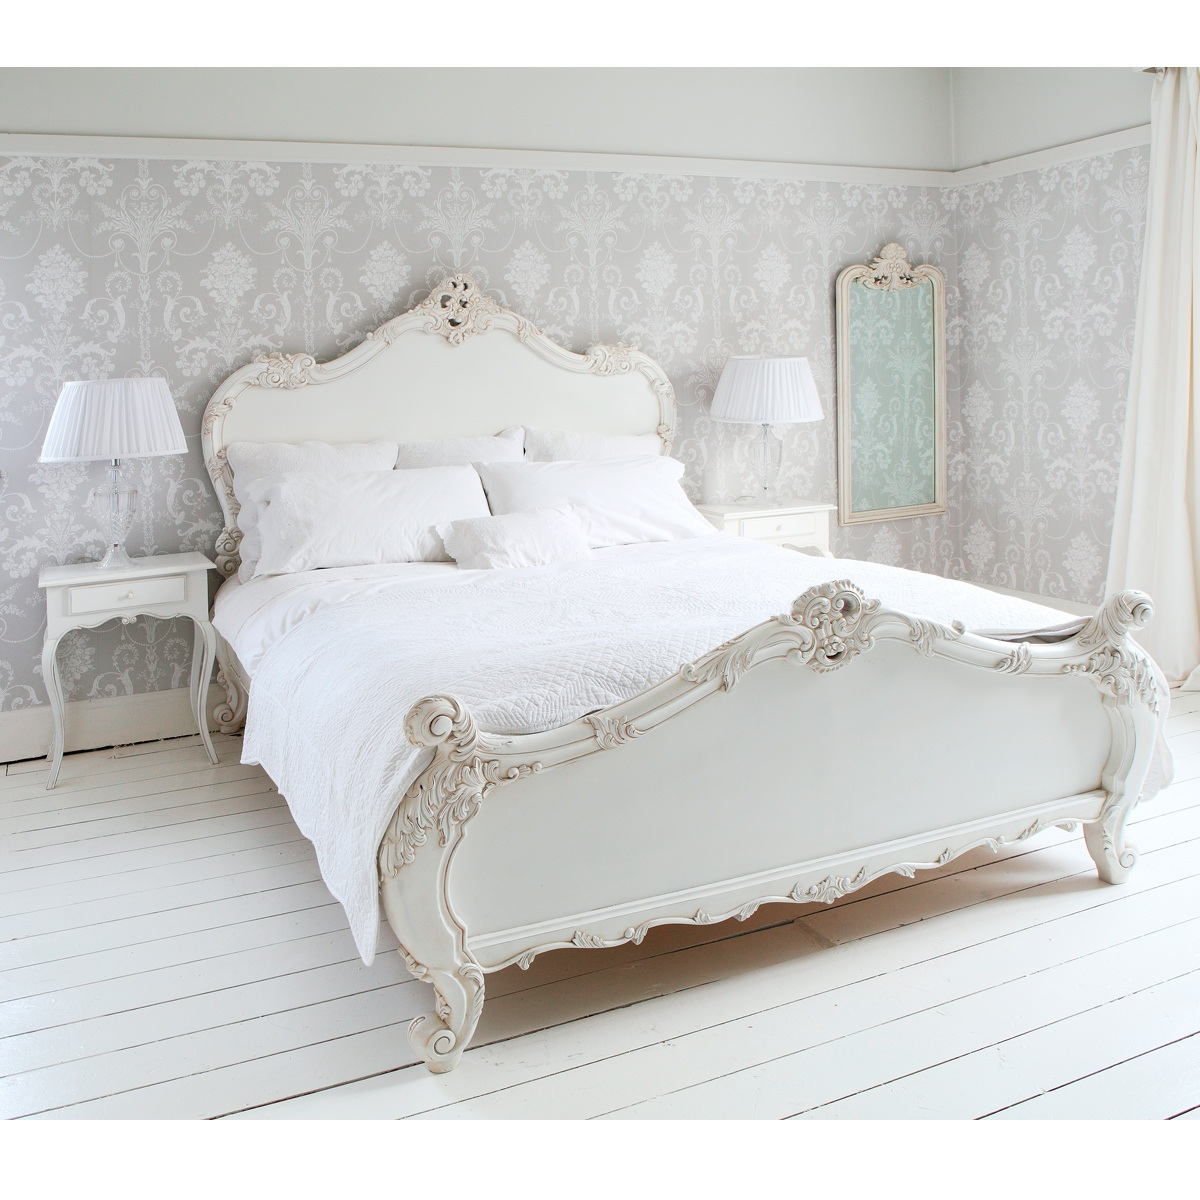 Provencal Sassy White French Bed (Image 1) by The French Bedroom ...